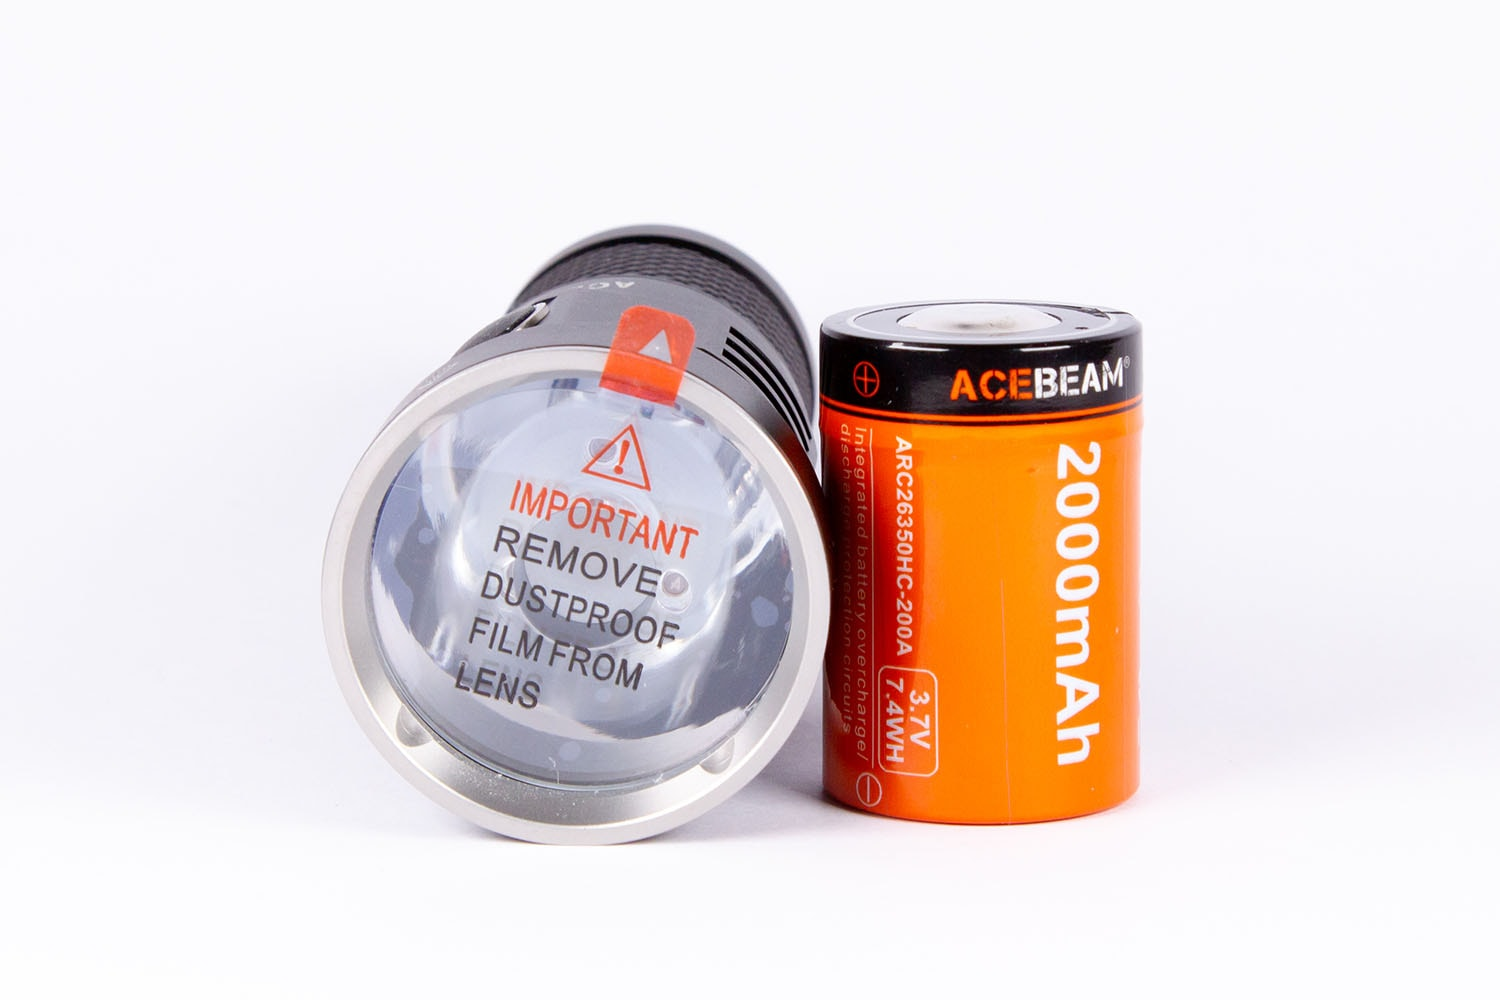 Acebeam E10 protection film